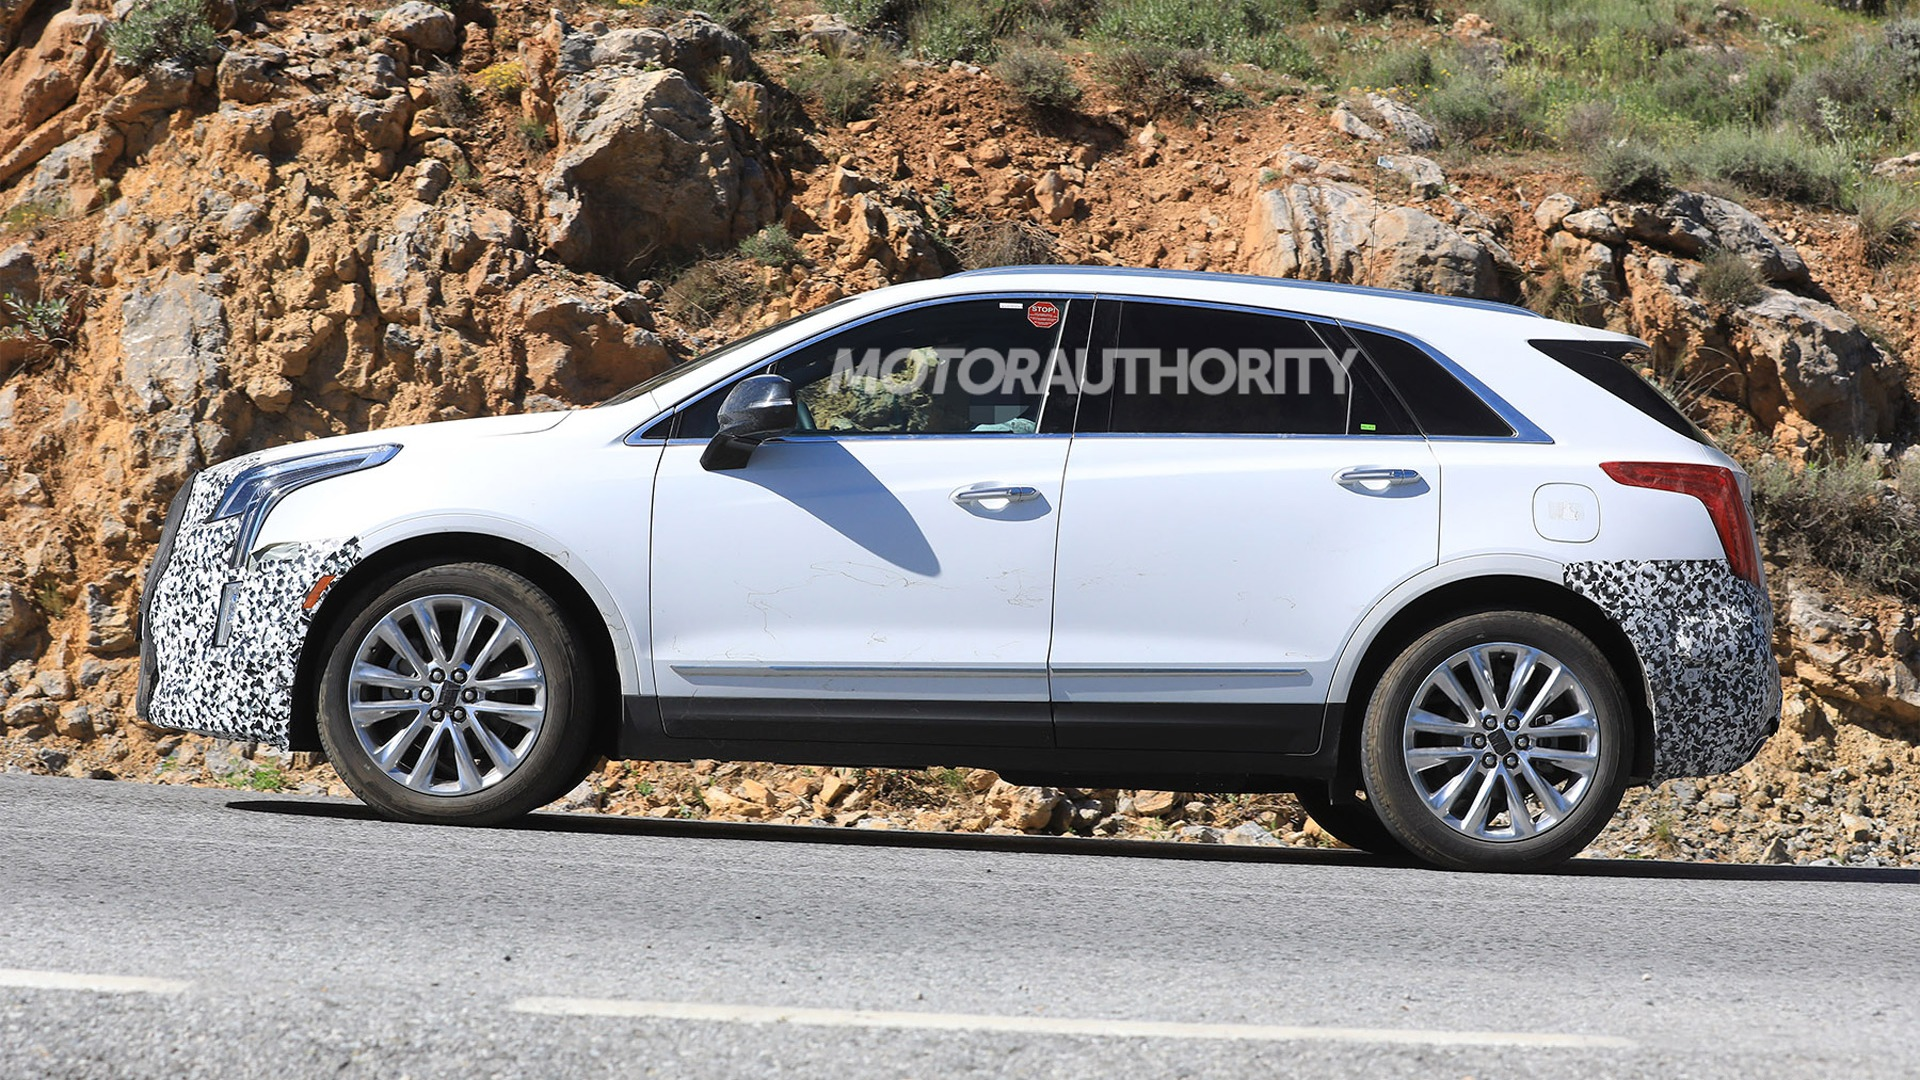 77 A 2020 Spy Shots Cadillac Xt5 Model